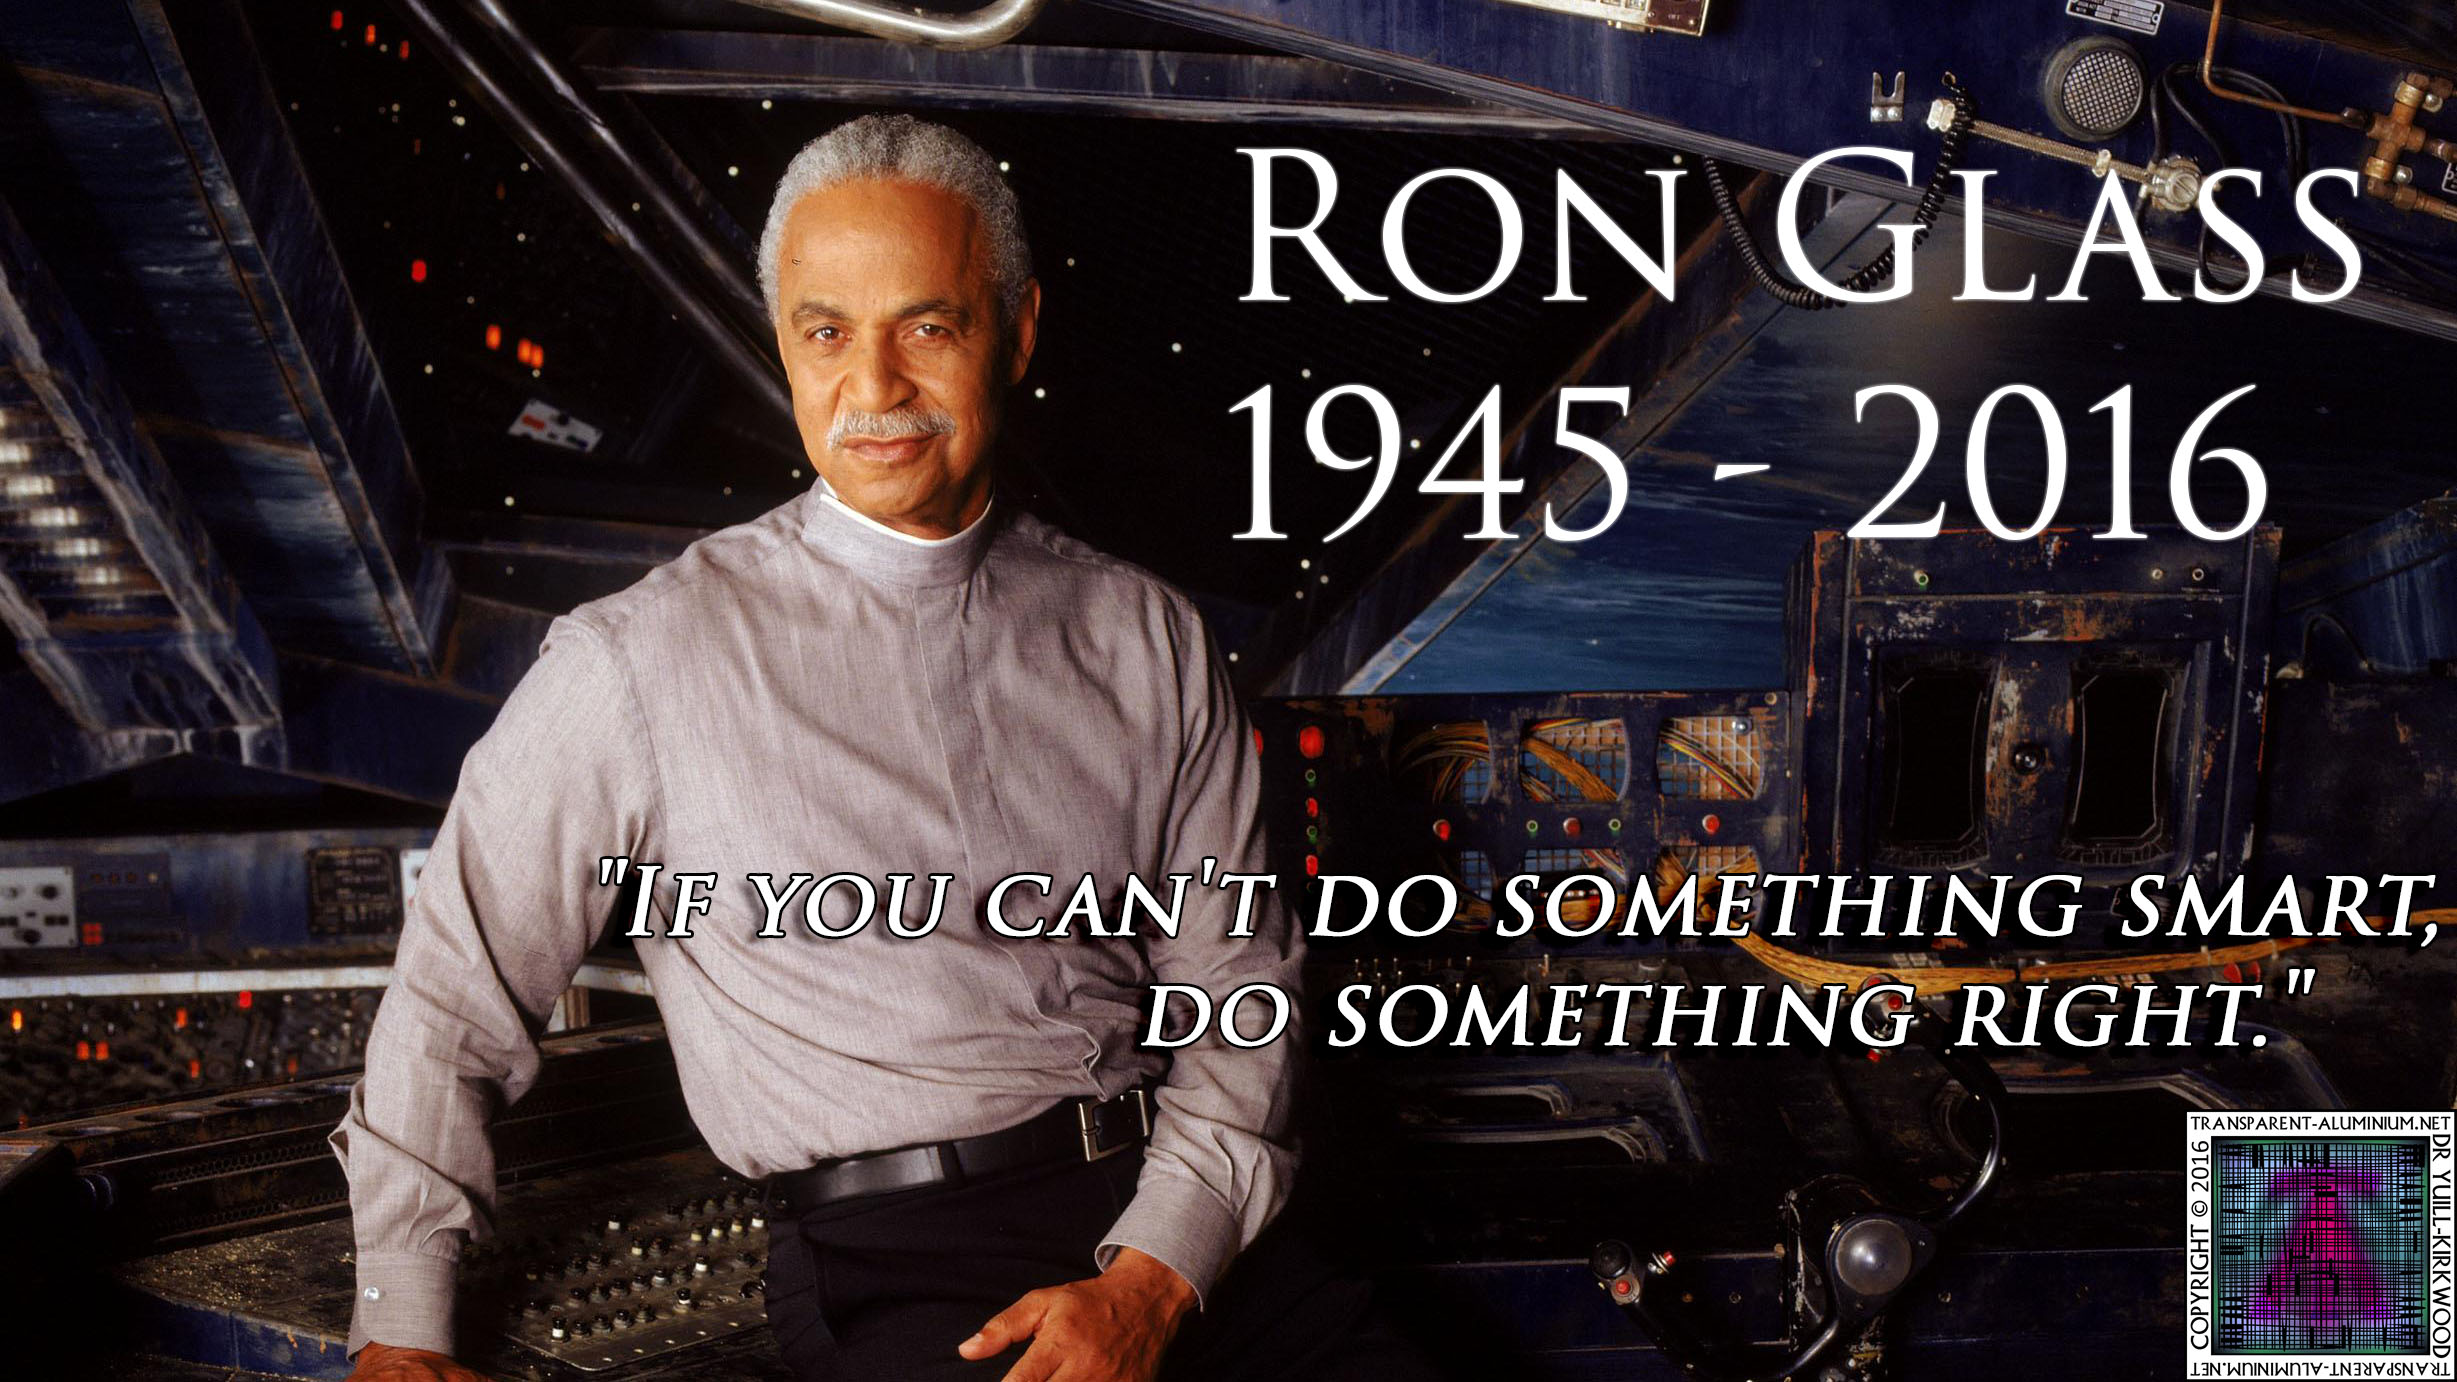 Ron Glass 1945 - 2016